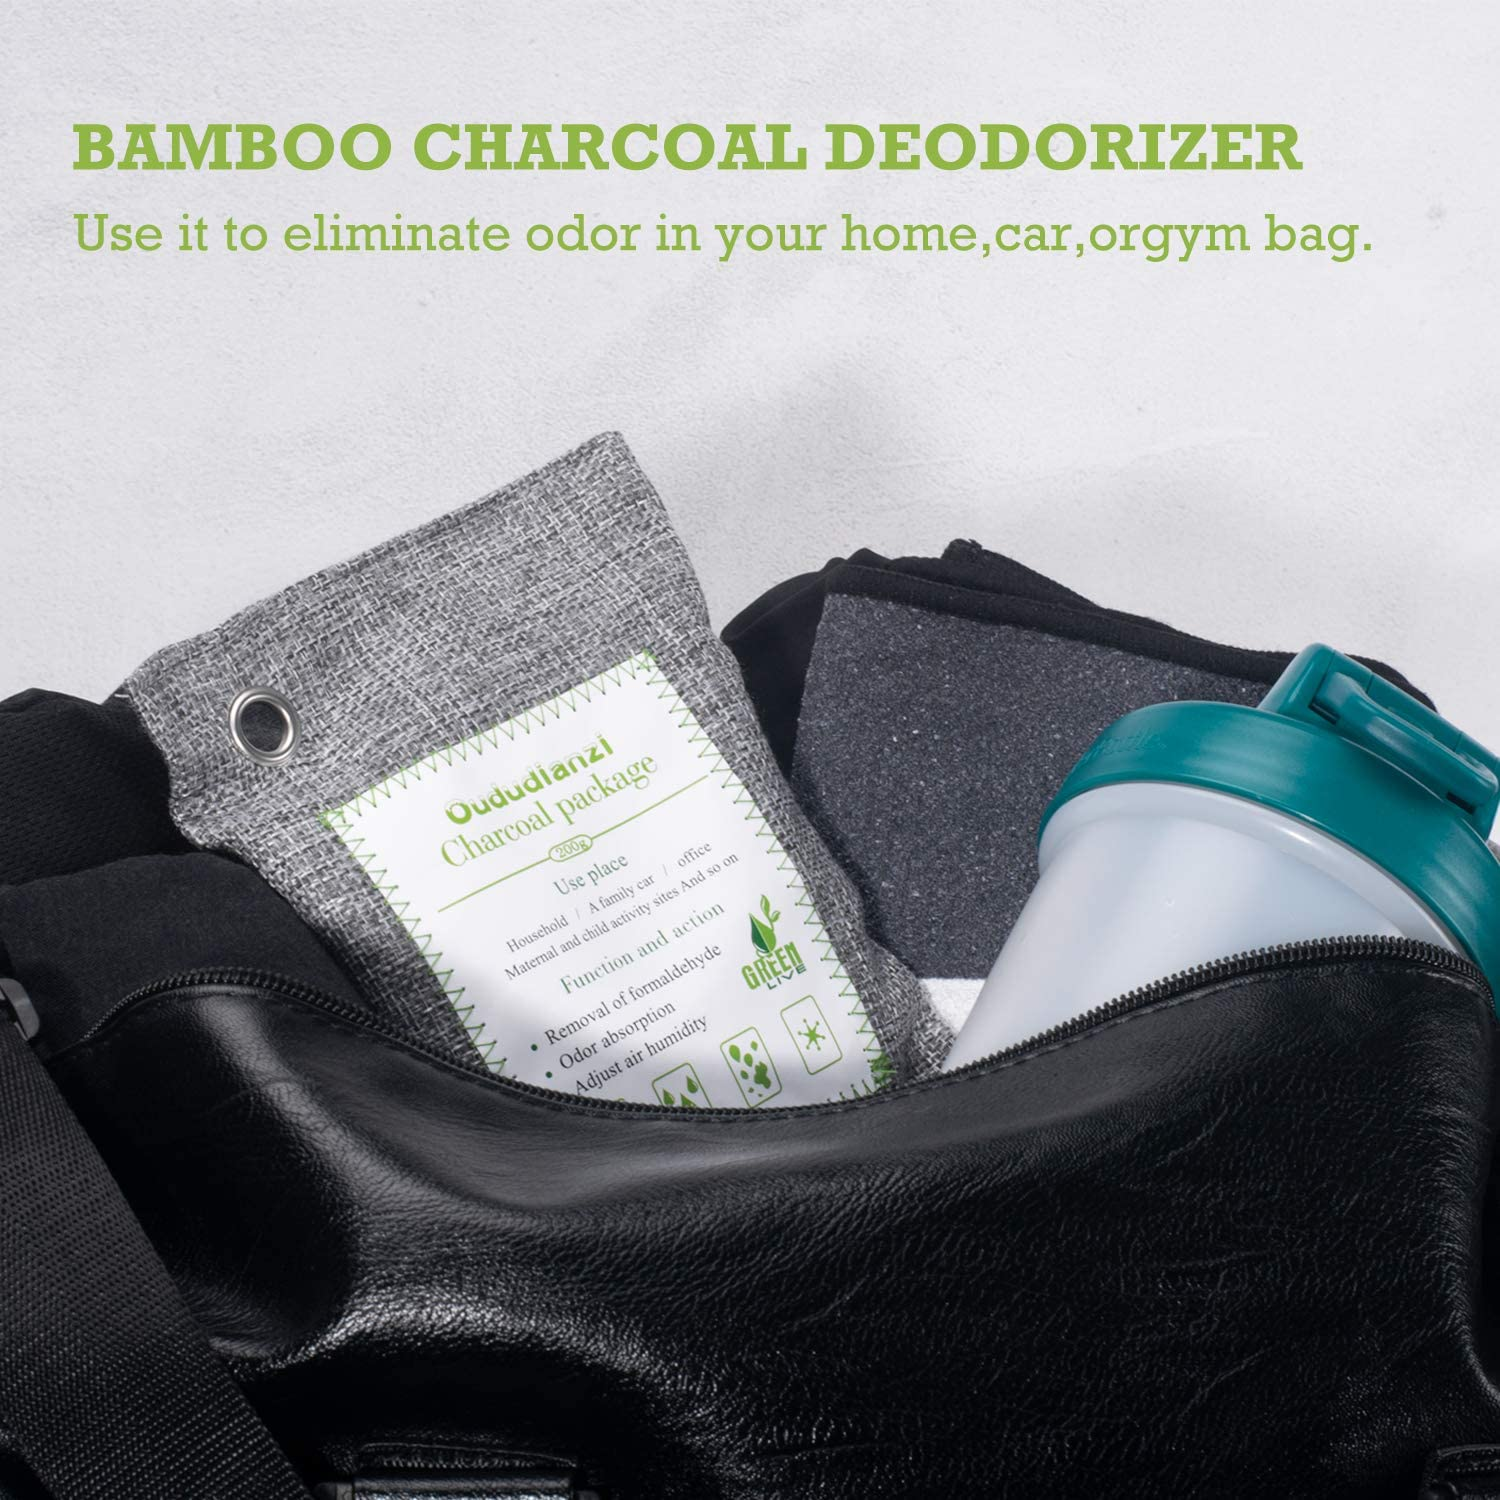 Shoes Natural Air Purifying Bundle with S Hooks Car Moisture Absorbent Odor Eliminator for Gym Bags 8 Pack Bathroom Duboch/é Bamboo Charcoal Bags for or Pet Areas